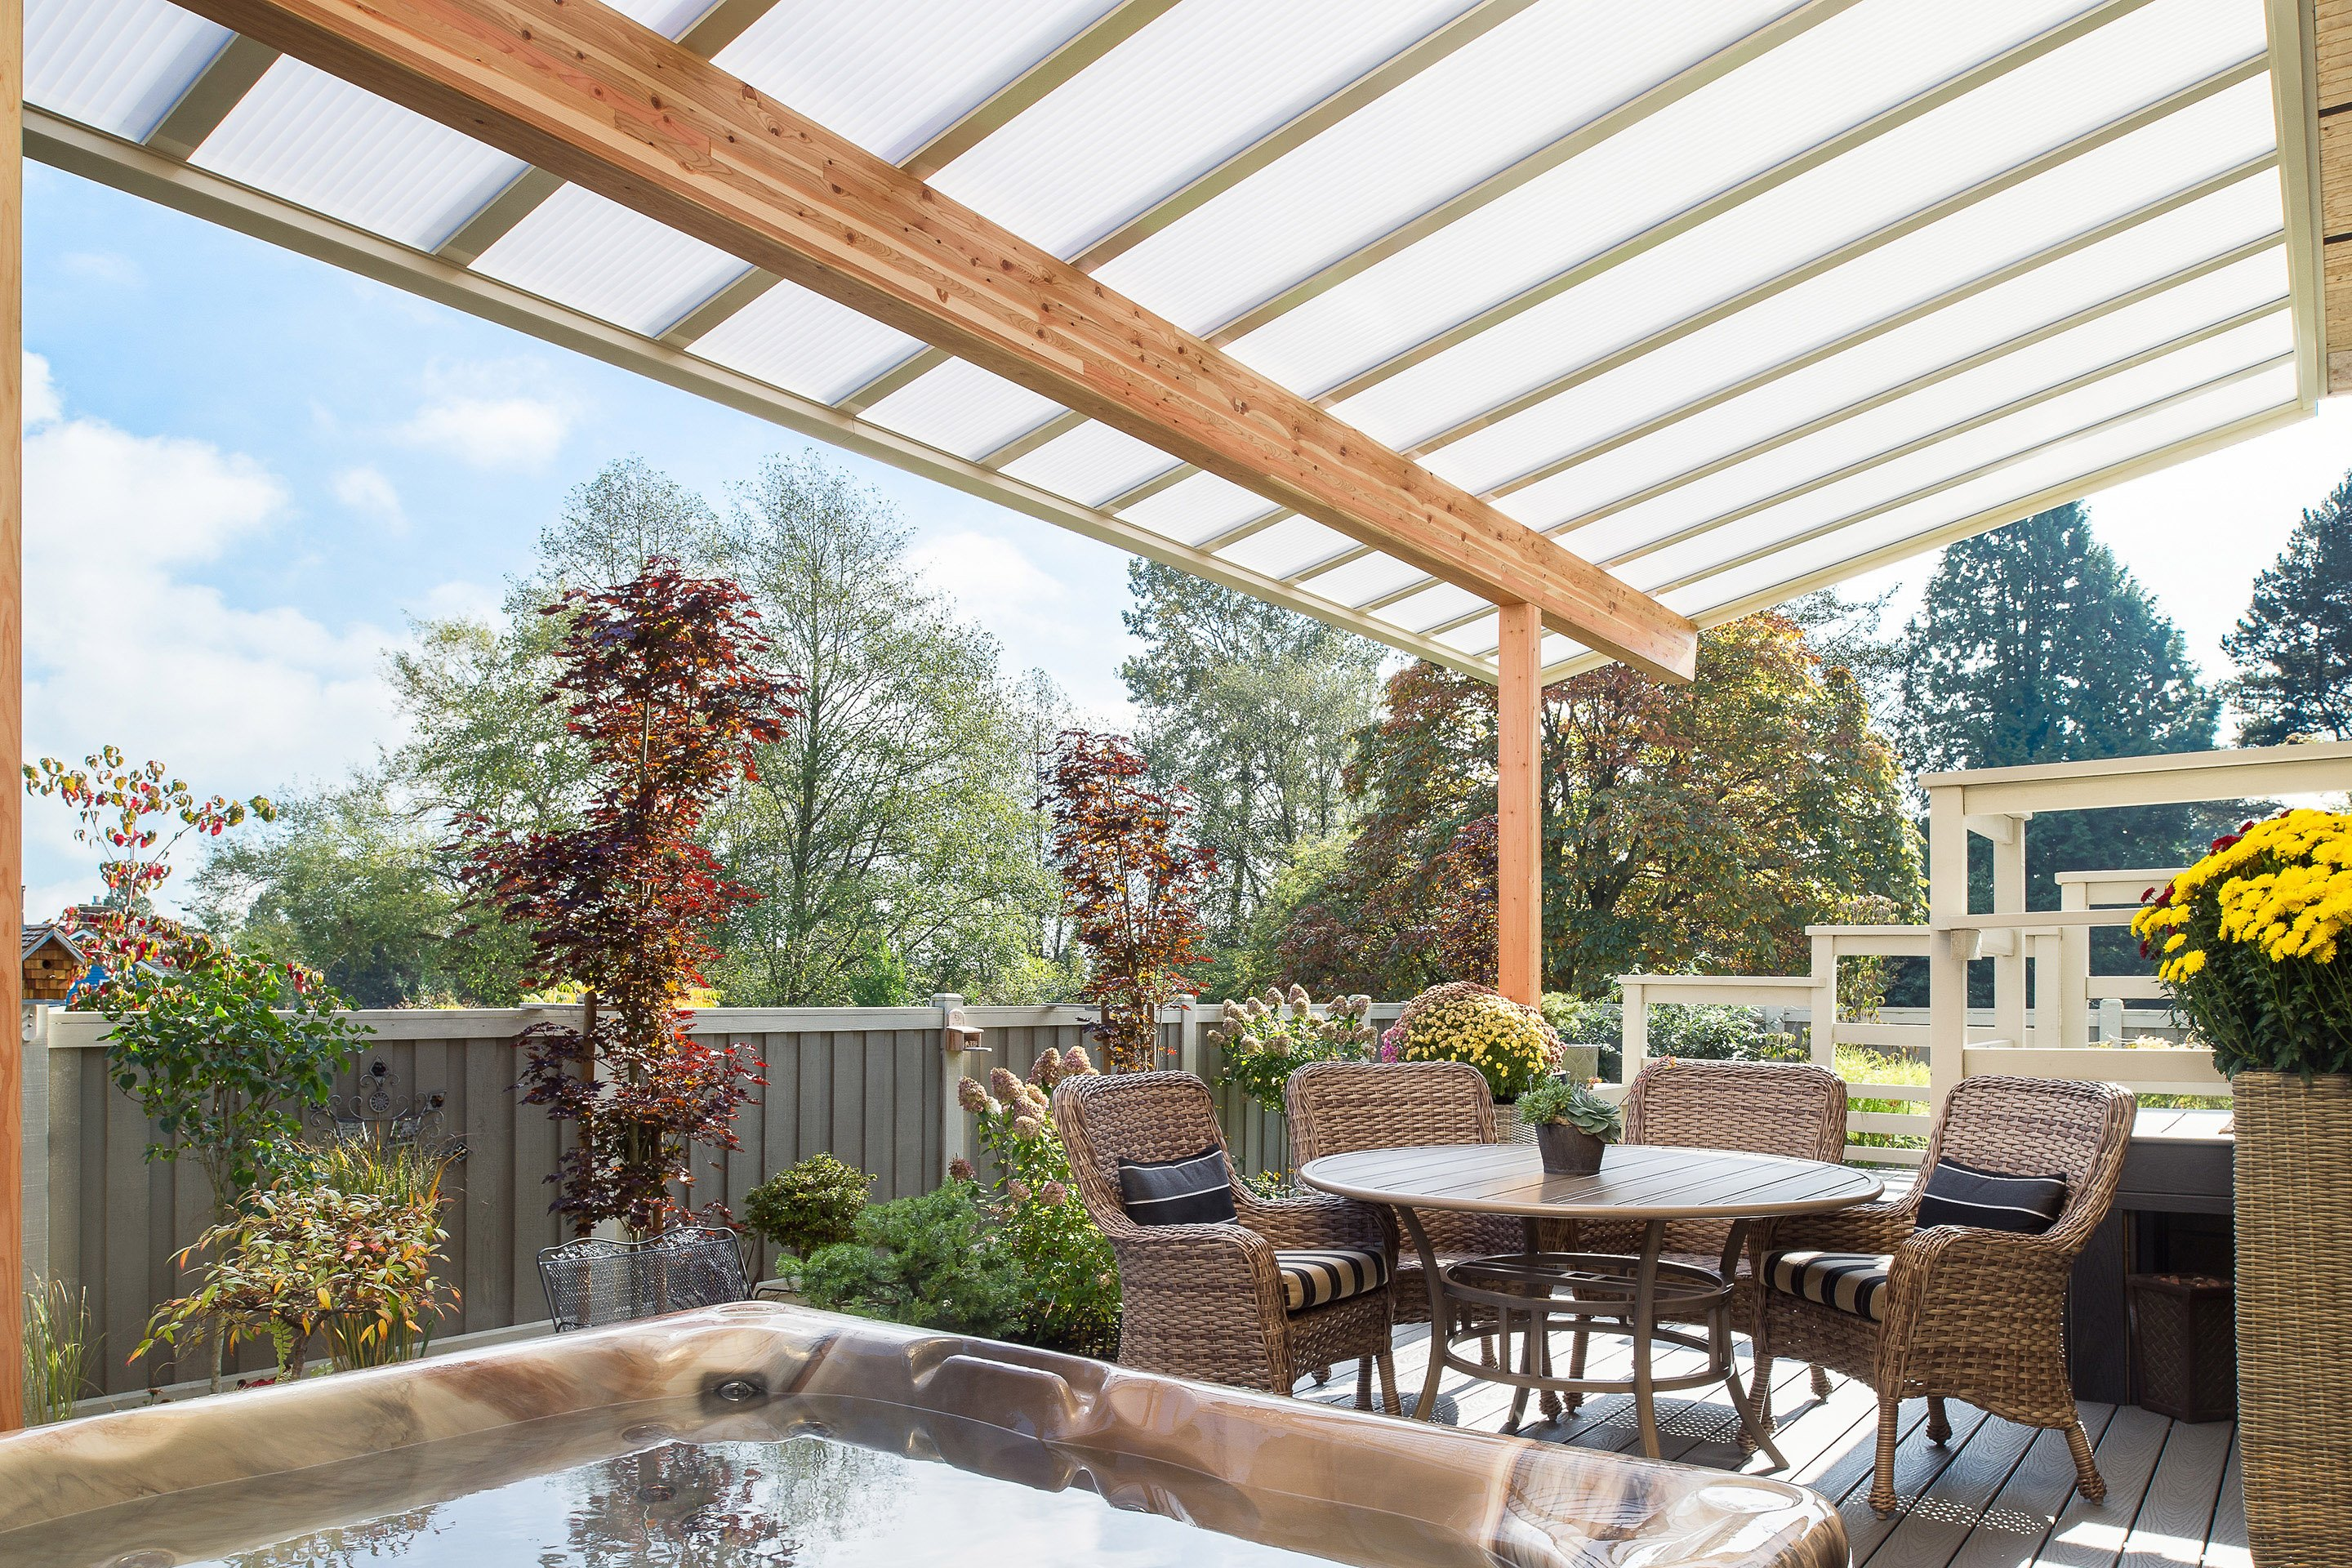 patio cover, natural light patio cover, acrylic patio cover, wood patio cover, patio awning, awning, patio awning, sun deck, patio cover over hot tub, hot tub protection, pergola, sundeck, outdoor living space